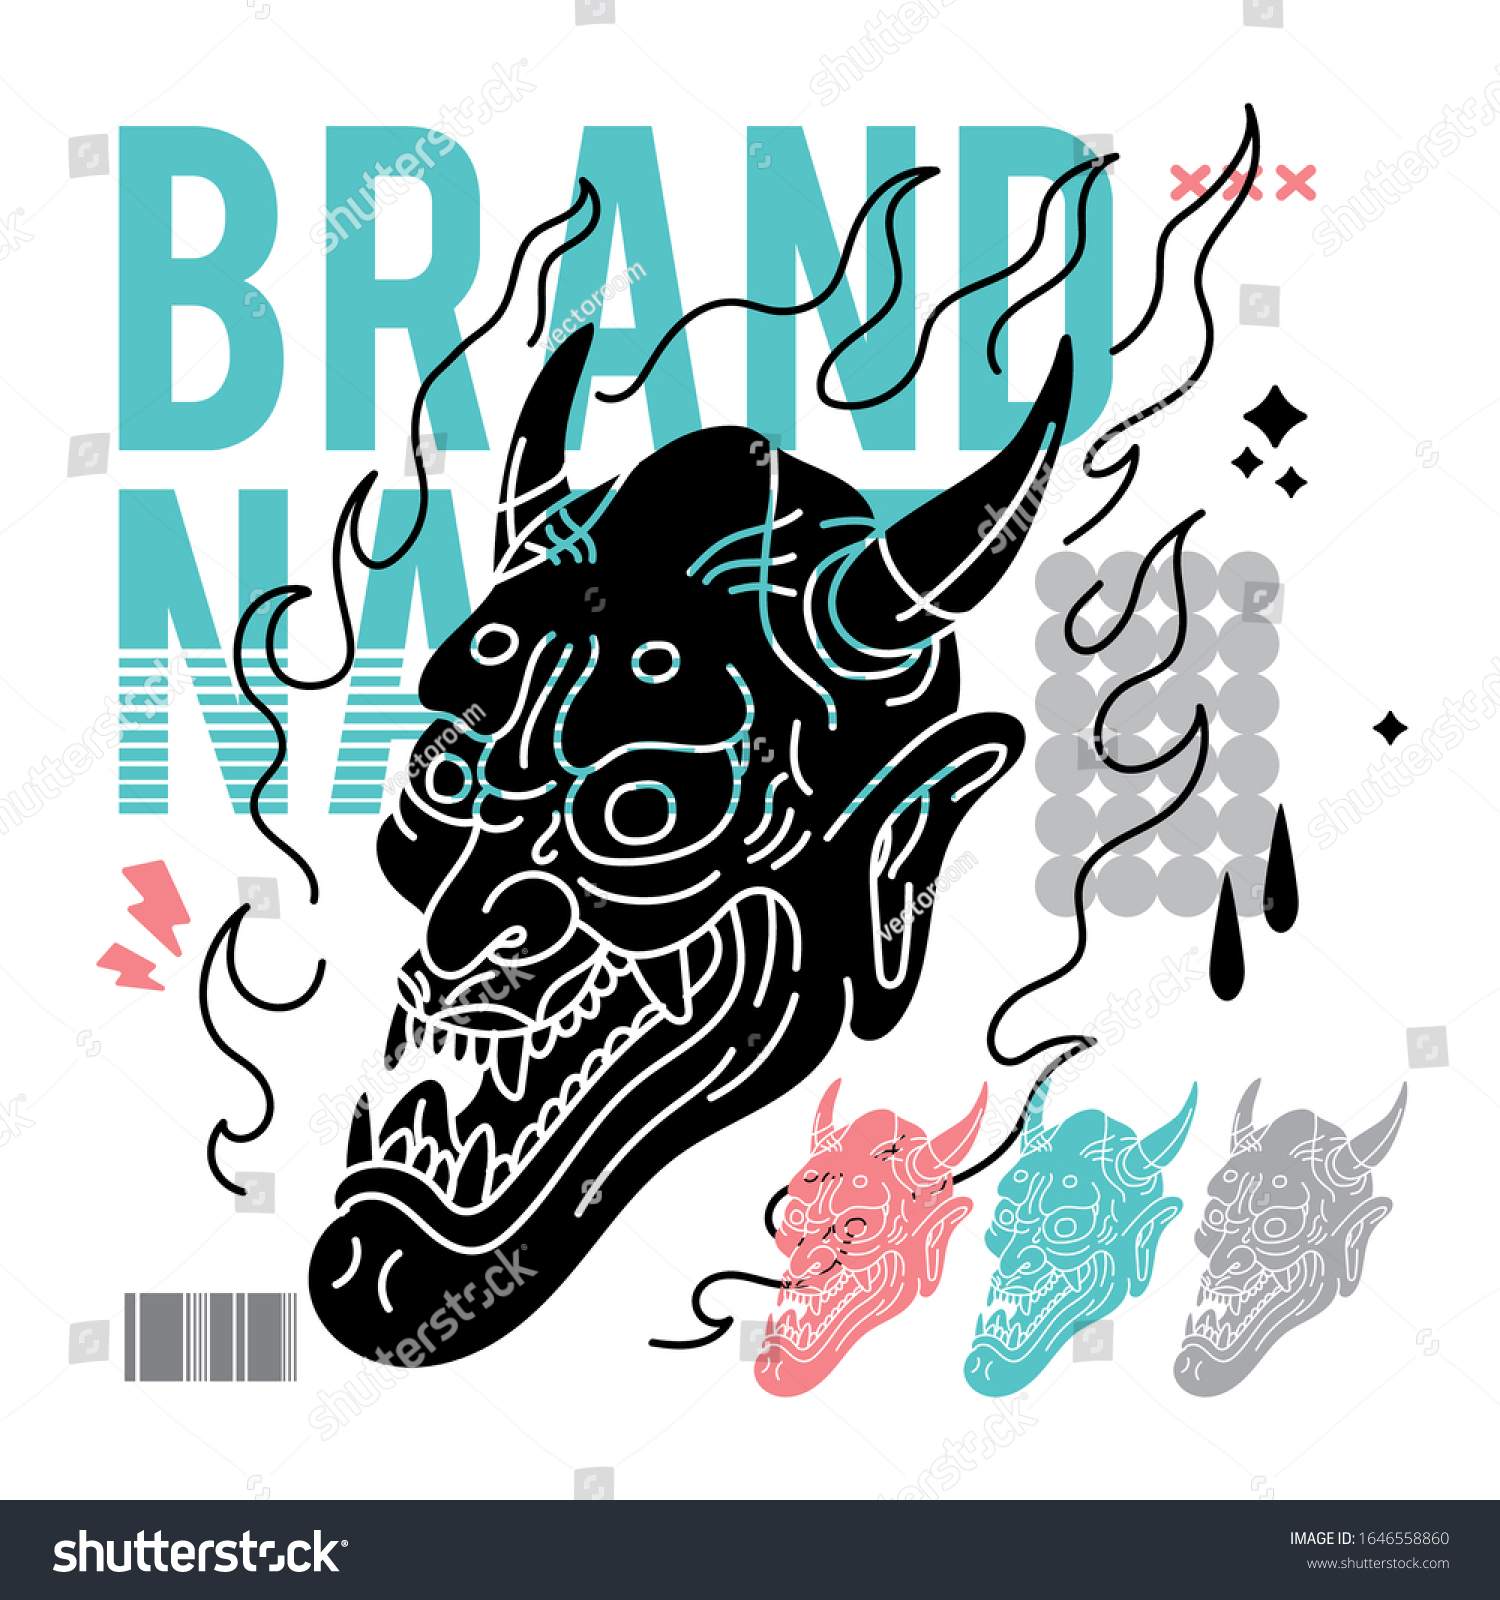 Oni Mask Hannya Mask Japan Mask Stock Vector Royalty Free 1646558860 Find best oni mask wallpaper and ideas by device, resolution, and quality (hd, 4k) from a curated website list. https www shutterstock com image vector oni mask hannya japan vector illustration 1646558860